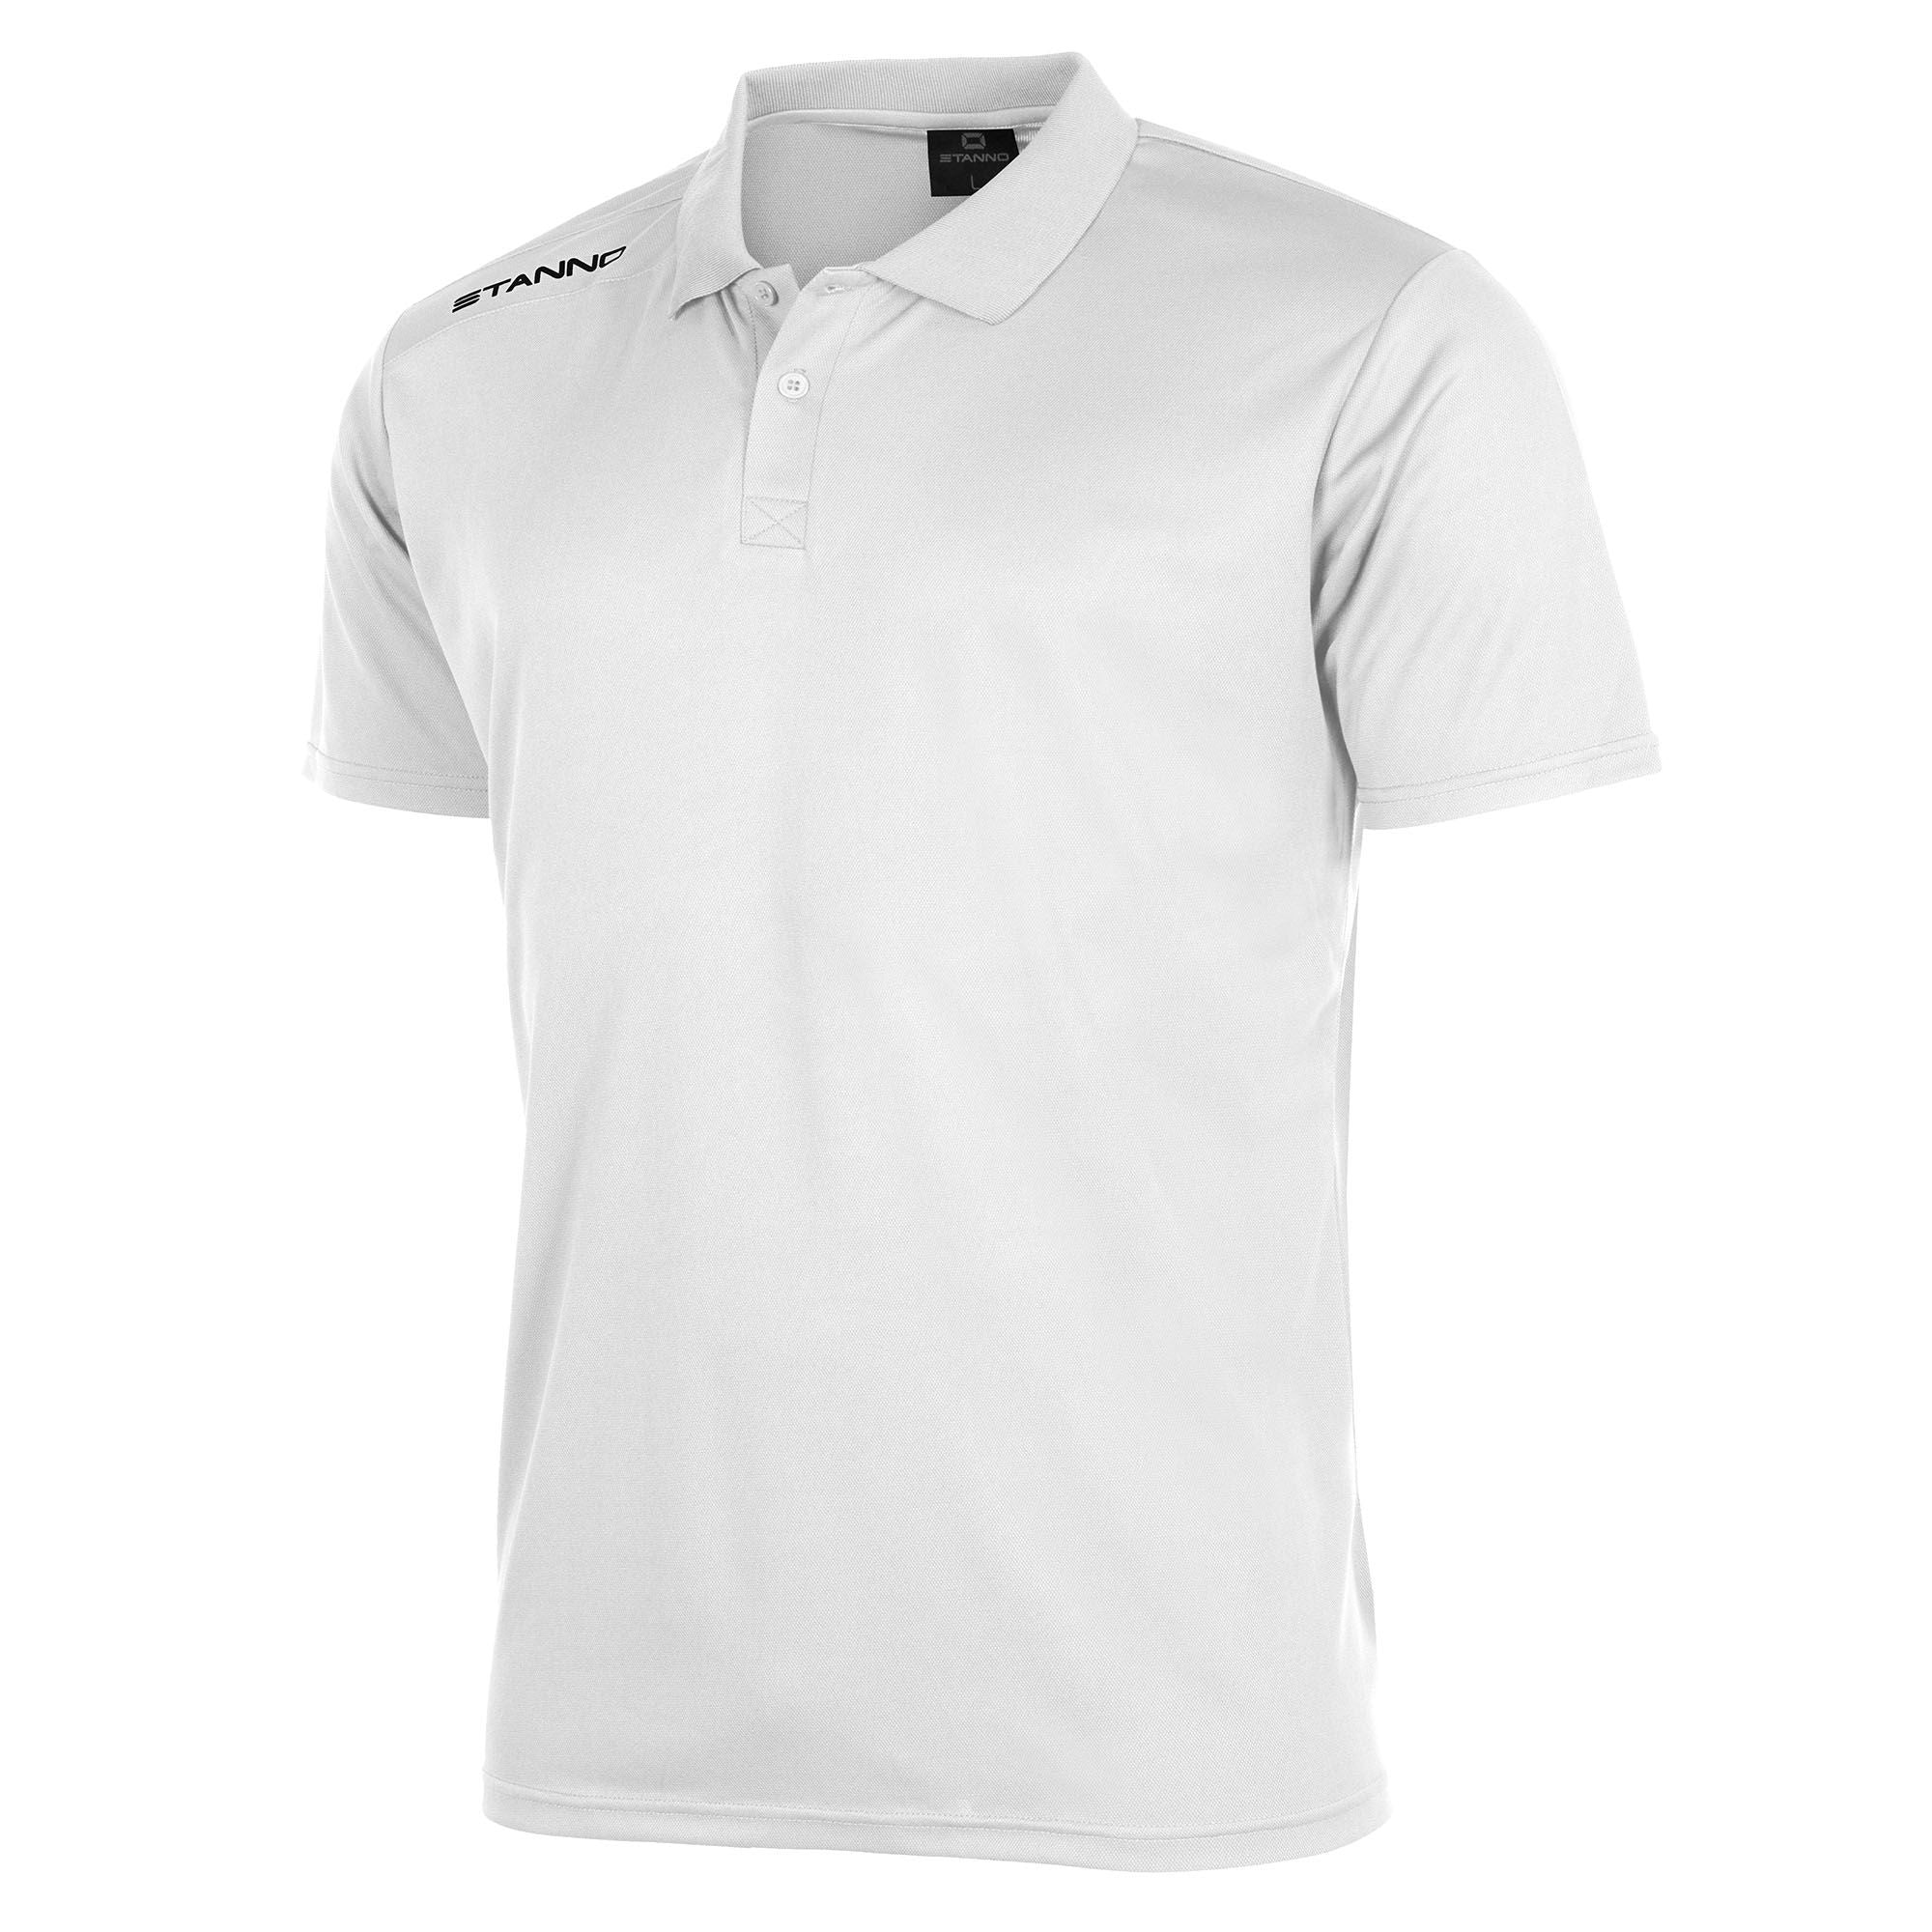 Front of Stanno Field Polo Shirt in white with black text logo on right shoulder